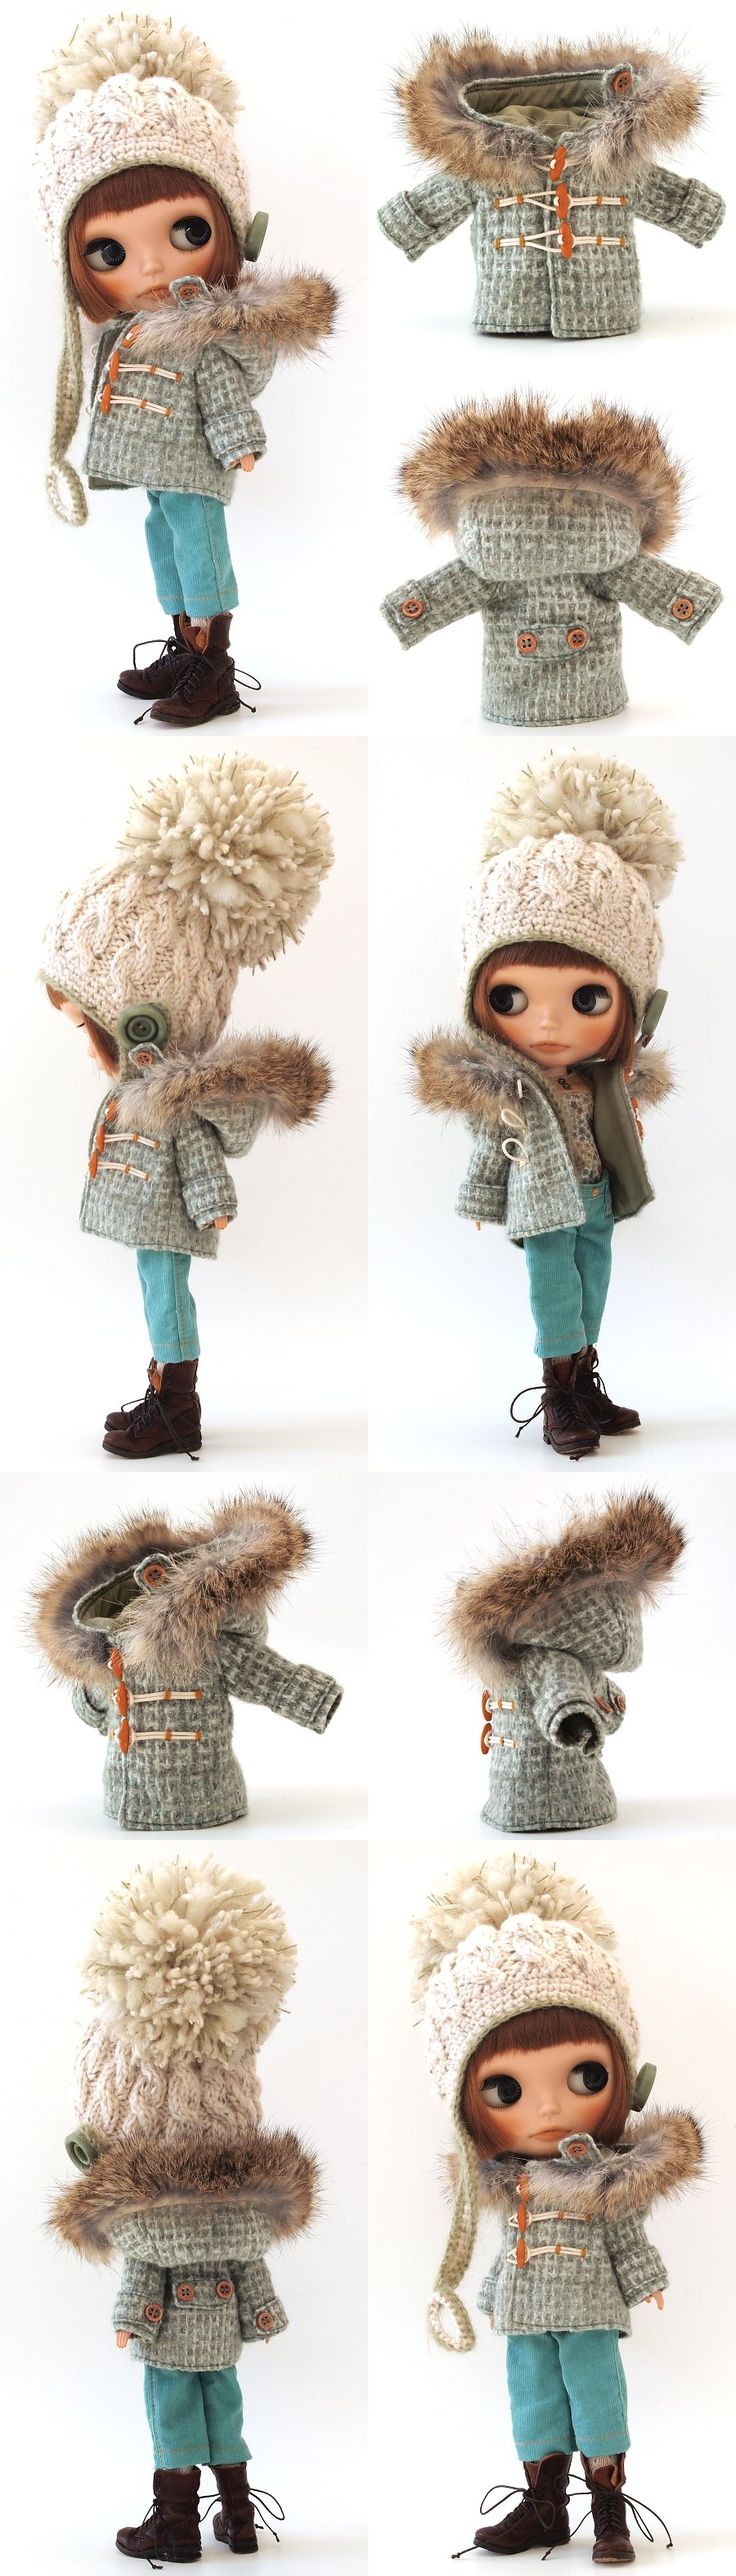 INSPIRATION: Blythe outfit by Lucalily [362] Look at the detail on these tiny clothes!!